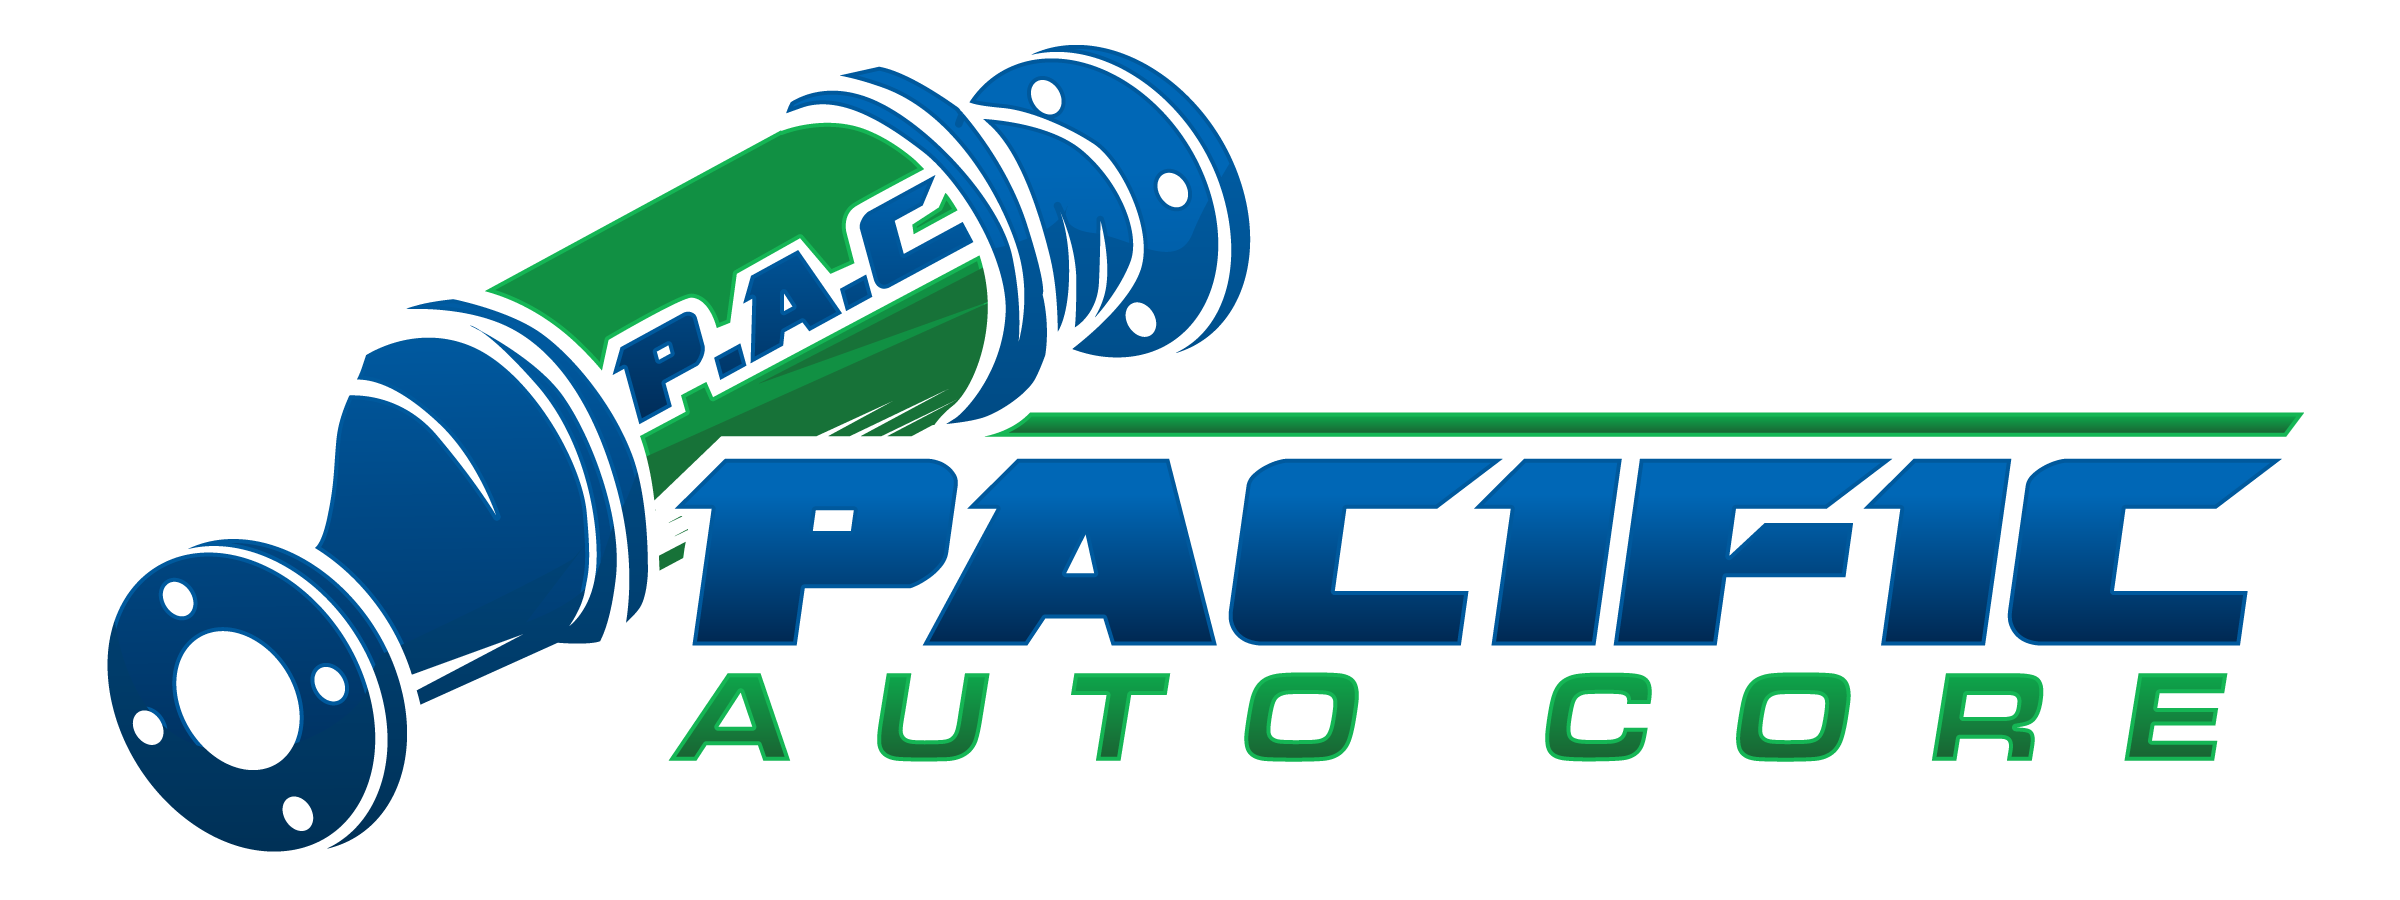 Create a logo for Pacific Auto Core Ltd that would appeal to car guys.